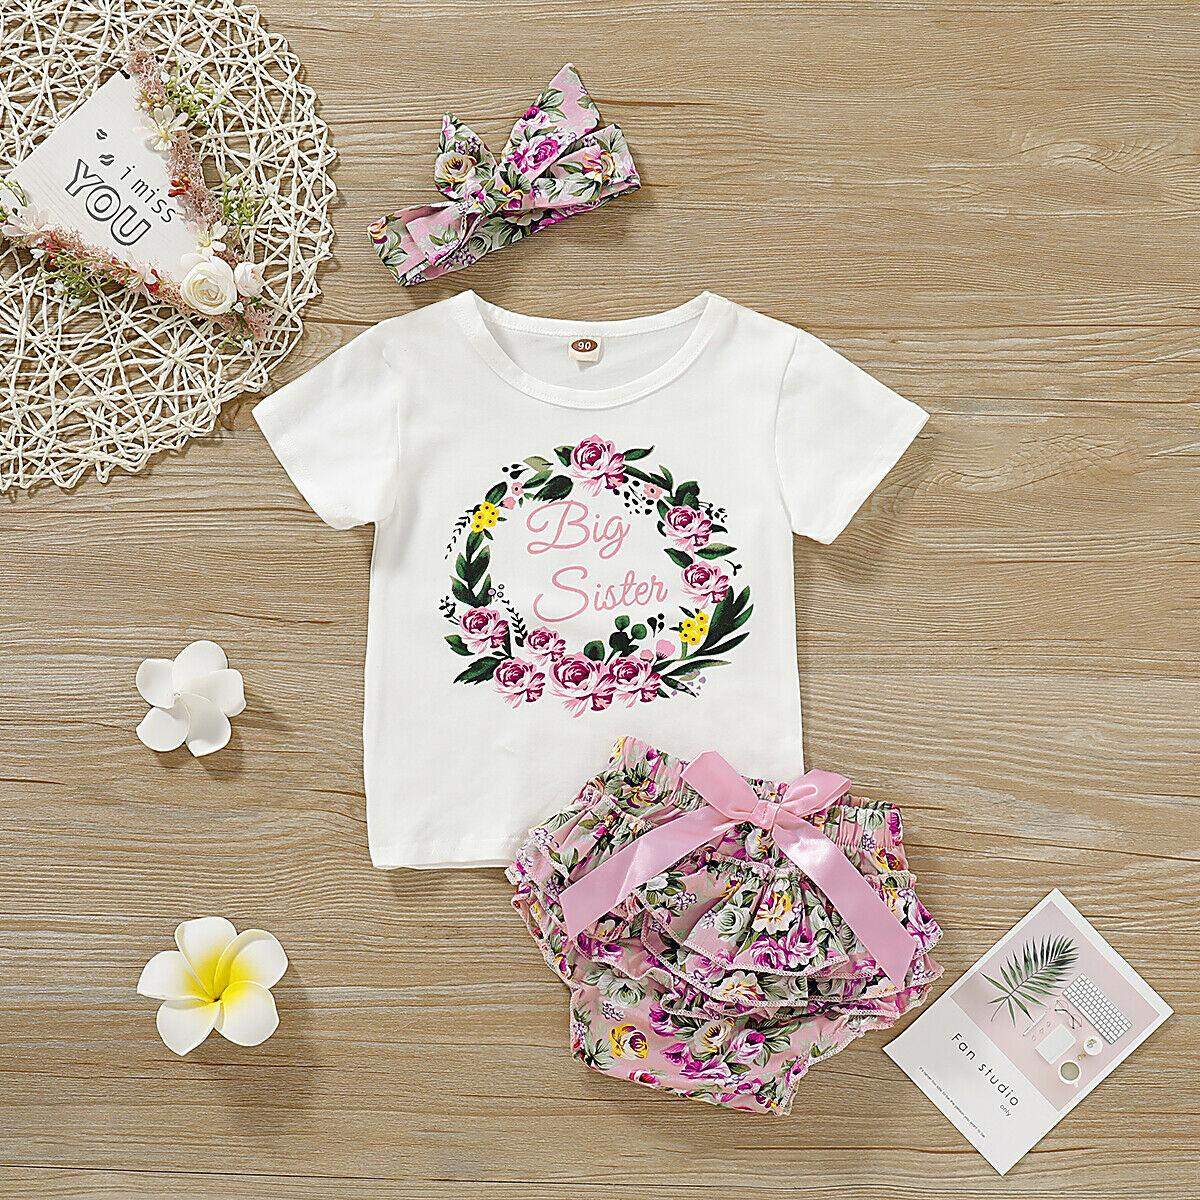 3PCS Floral Shorts Set 0-5 Years Toddler Kids Baby Girls Summer Romper Jumpsuit Tops Flower Layer Short Pants Headband Outfit